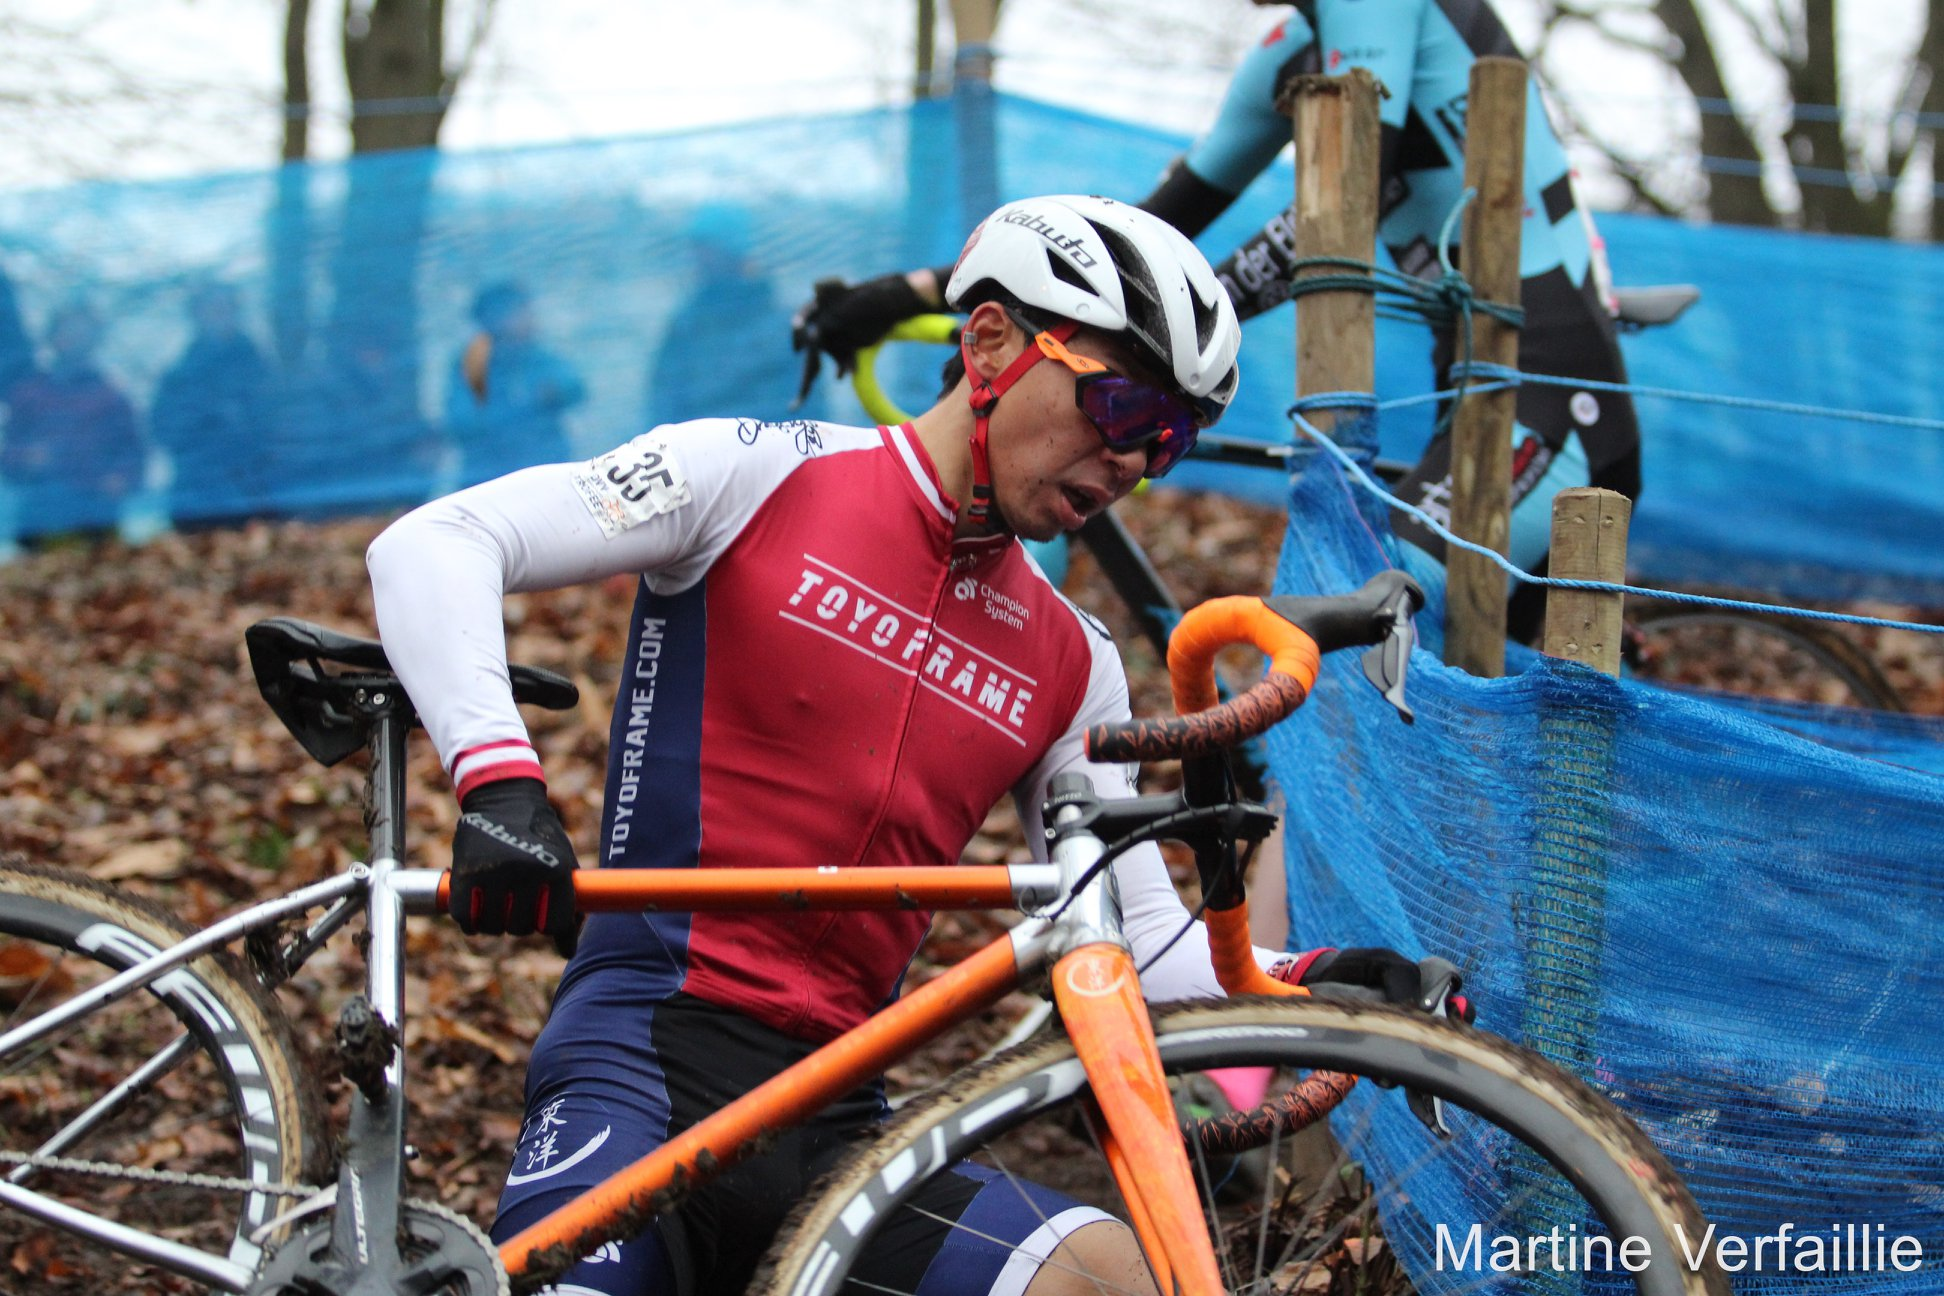 DVV verzekeringen trofee - Brussels Universities Cyclocross ブリュッセル大学シクロクロス